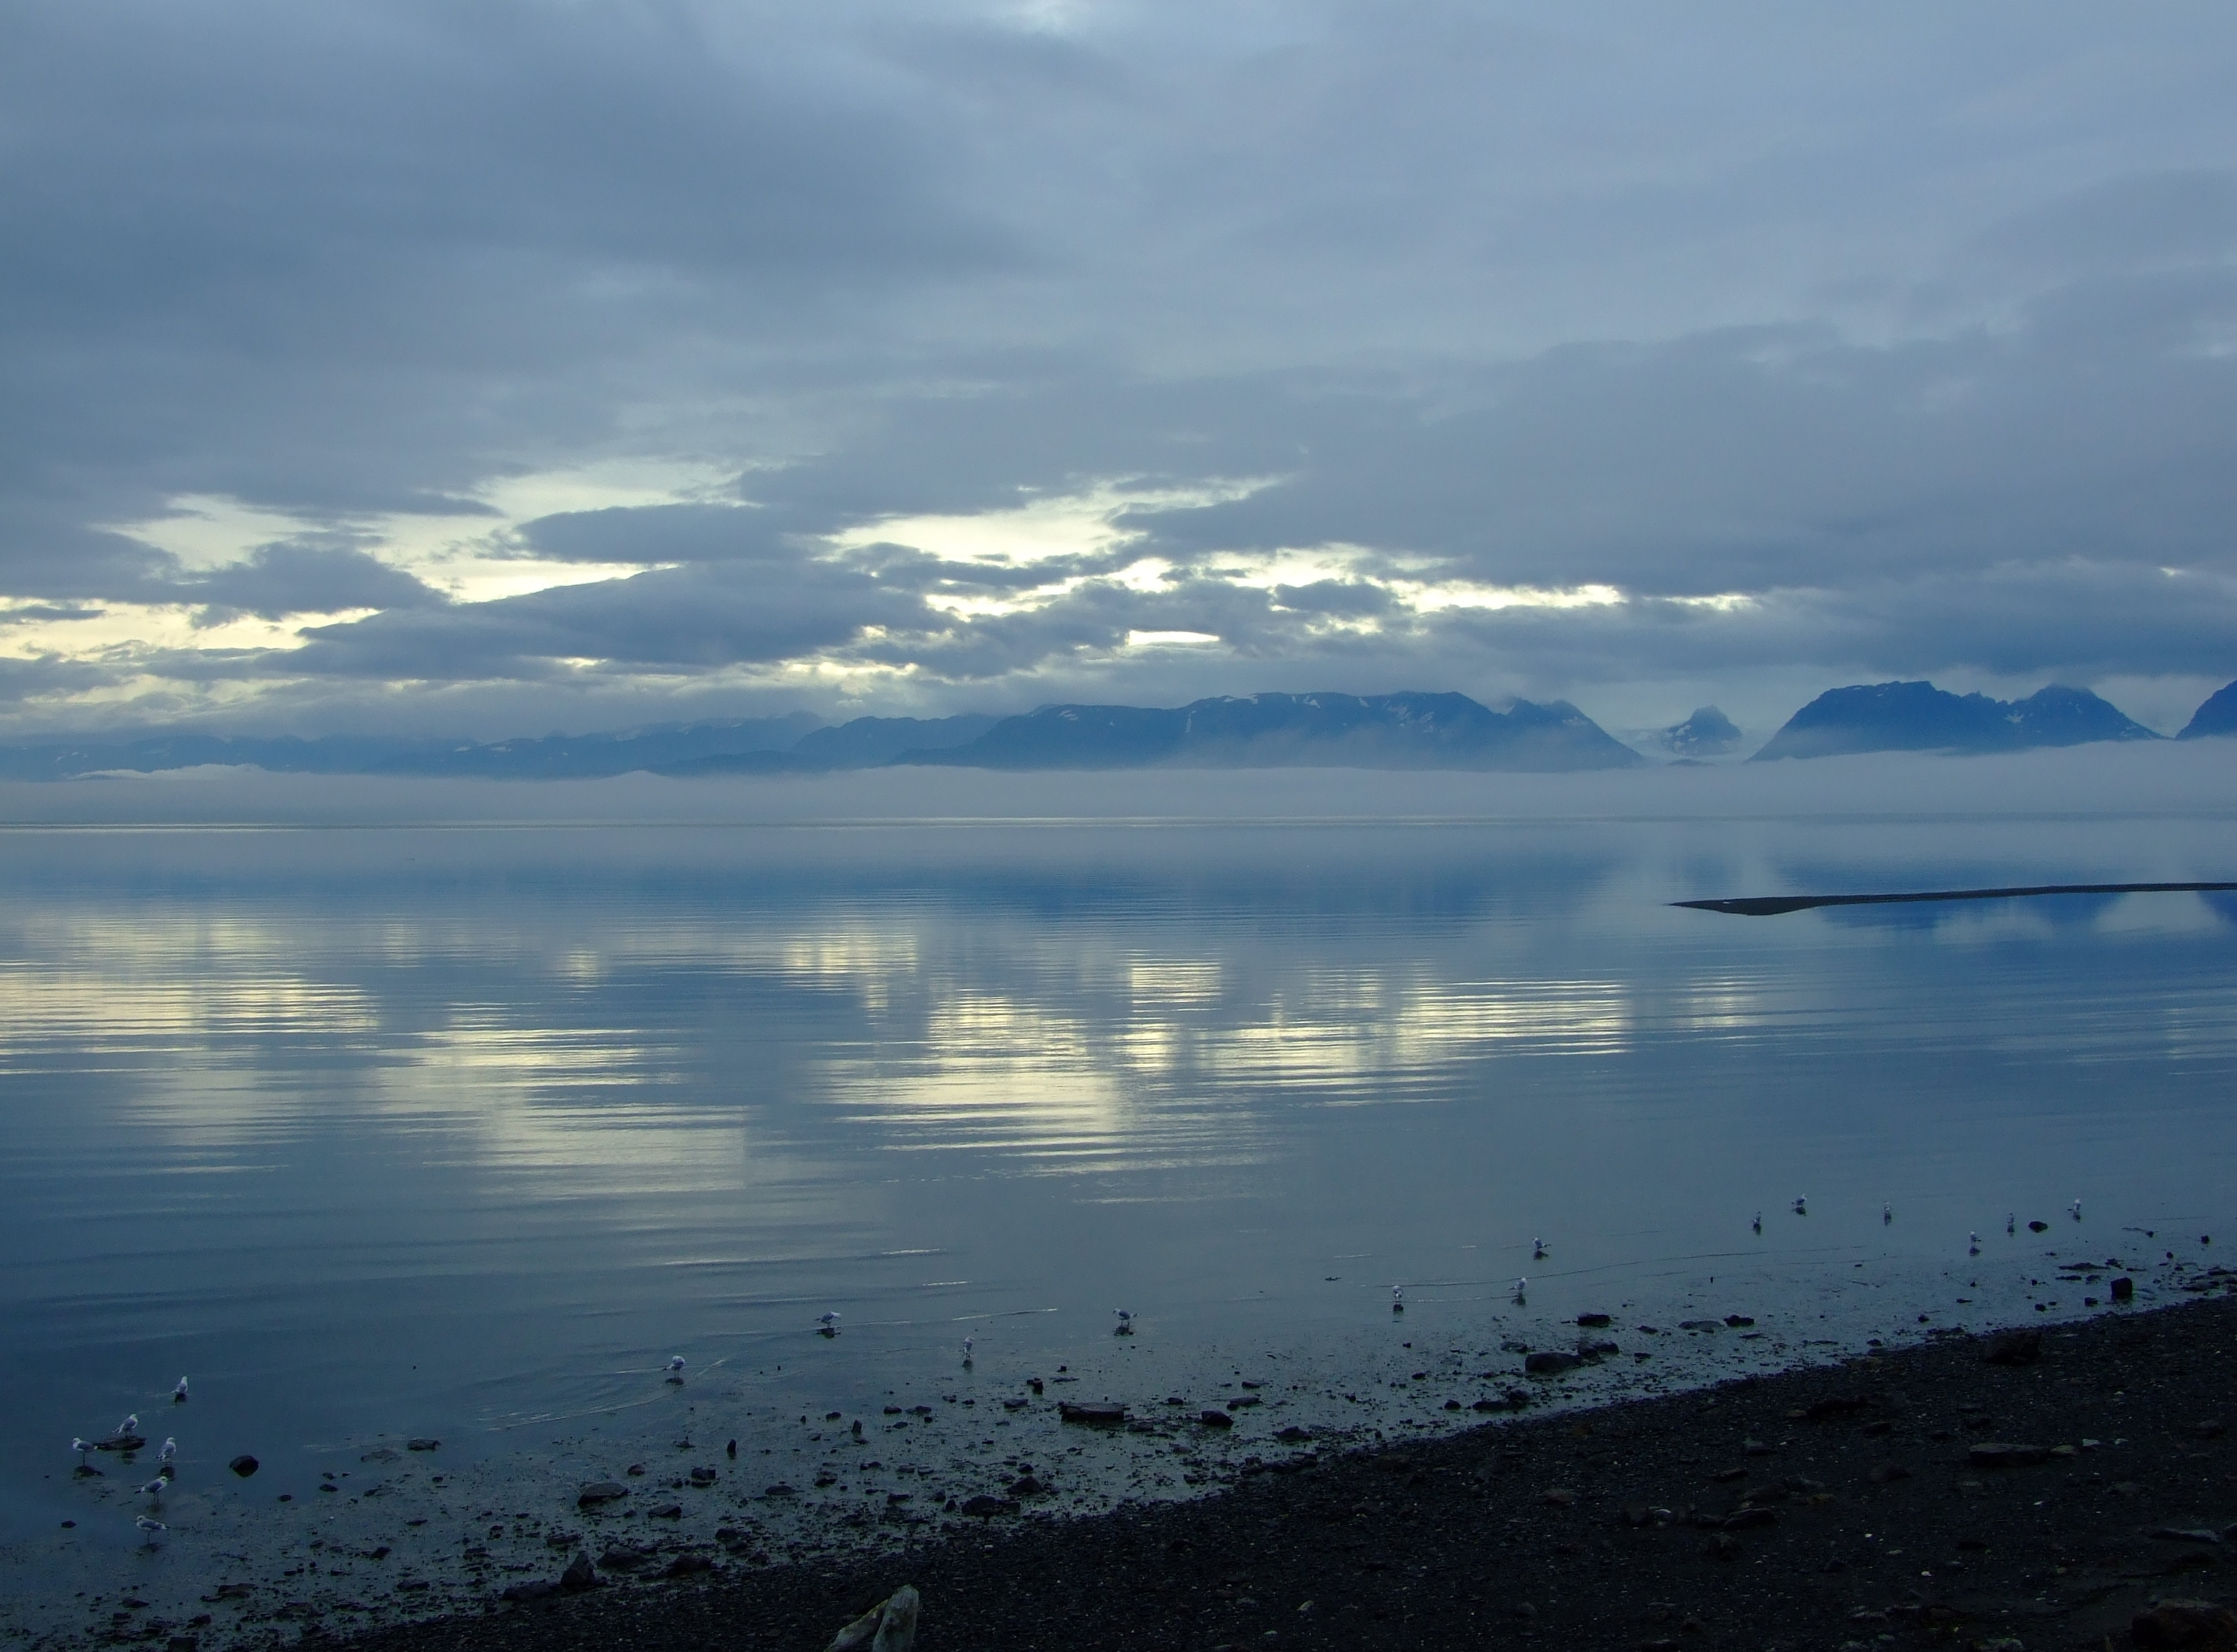 Looking east across Kachemak Bay from Homer with a none-too-hopeful amount of light in the sky.